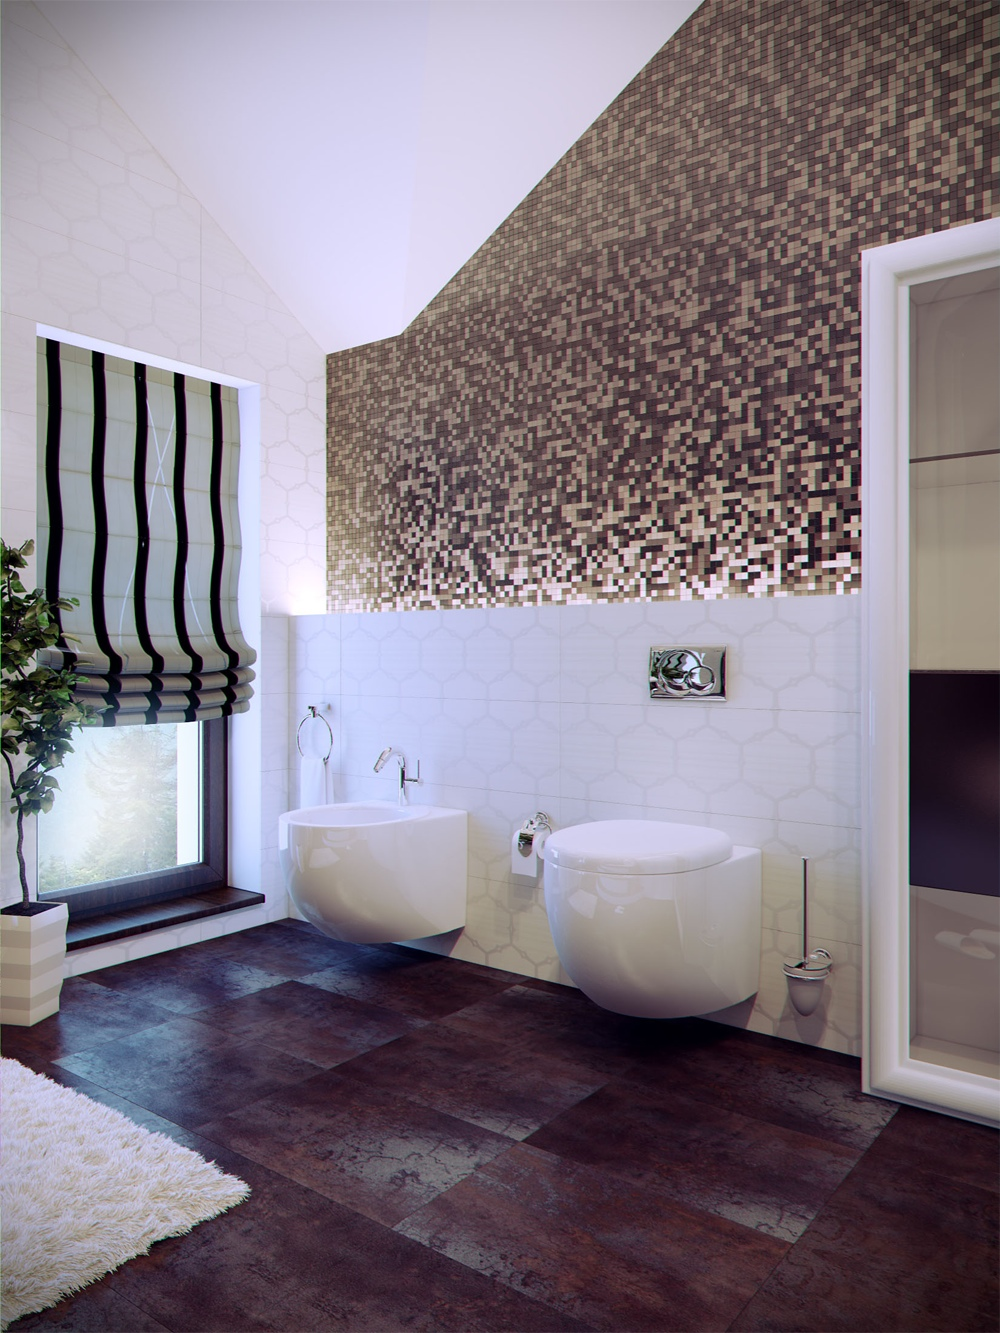 Modern Bathroom Design Ideas Pictures Tips From Hgtv: Modern Bathrooms With Spa-Like Appeal